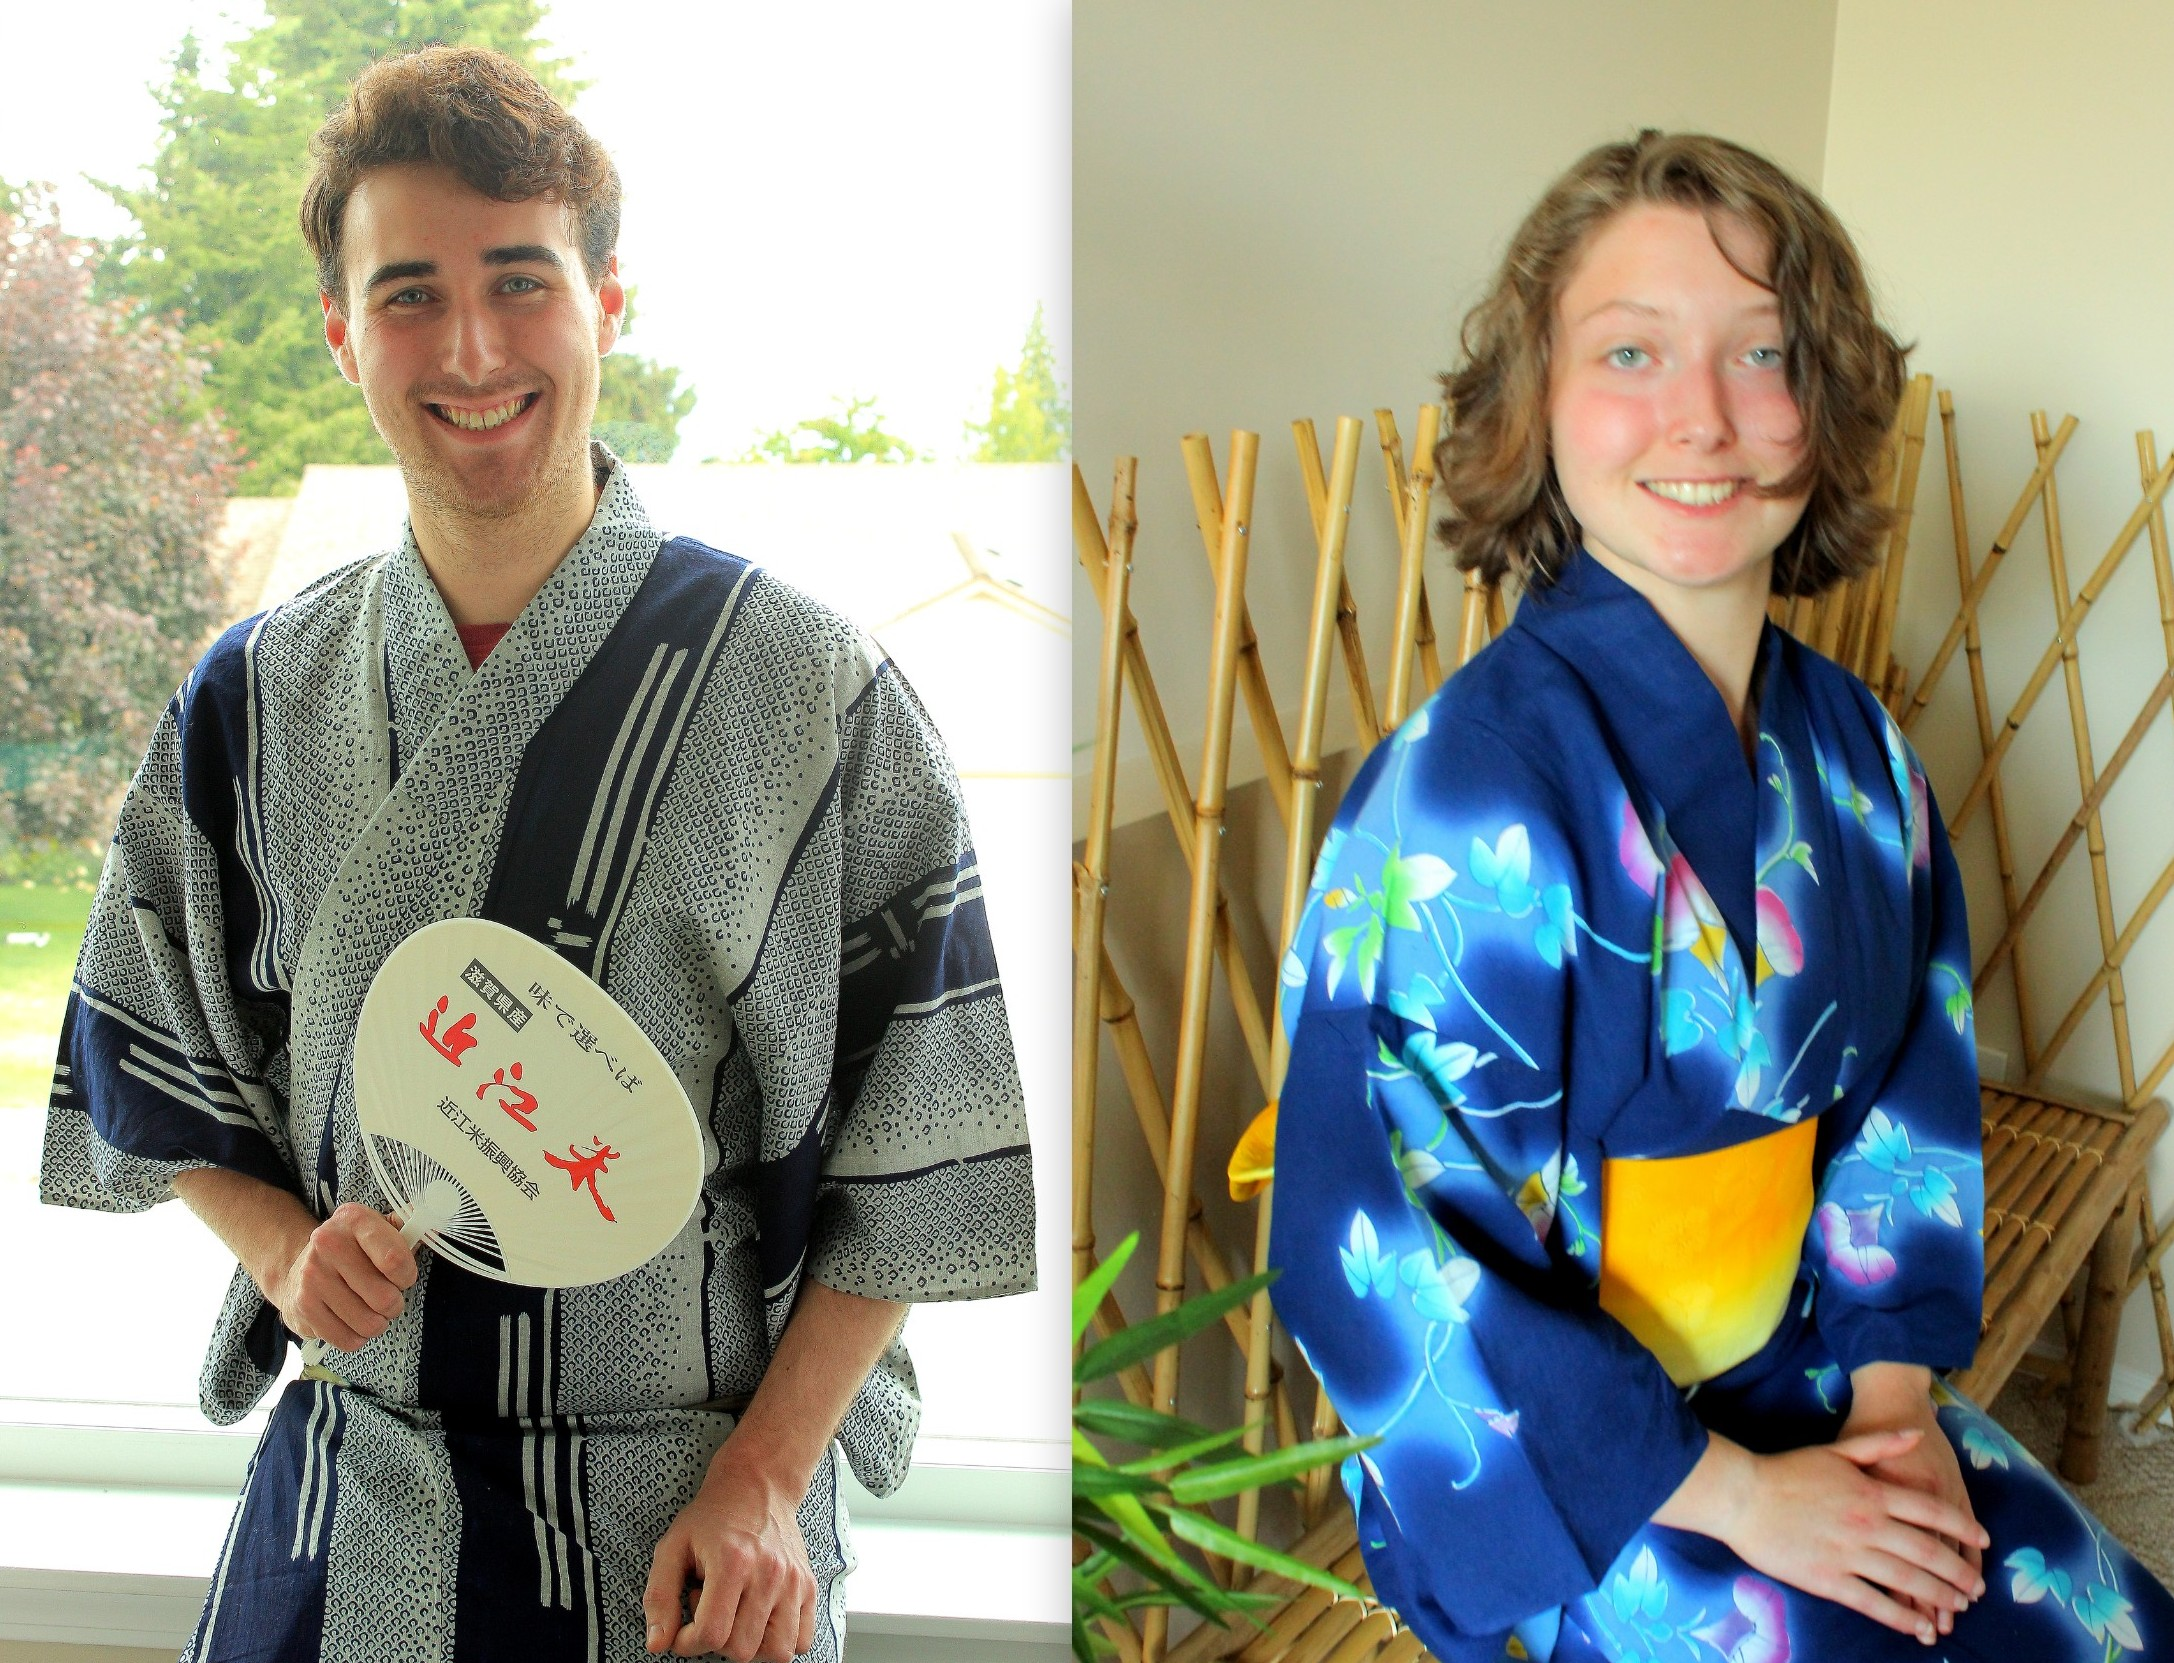 The Art of Wearing Kimonos - Crafternoon Series